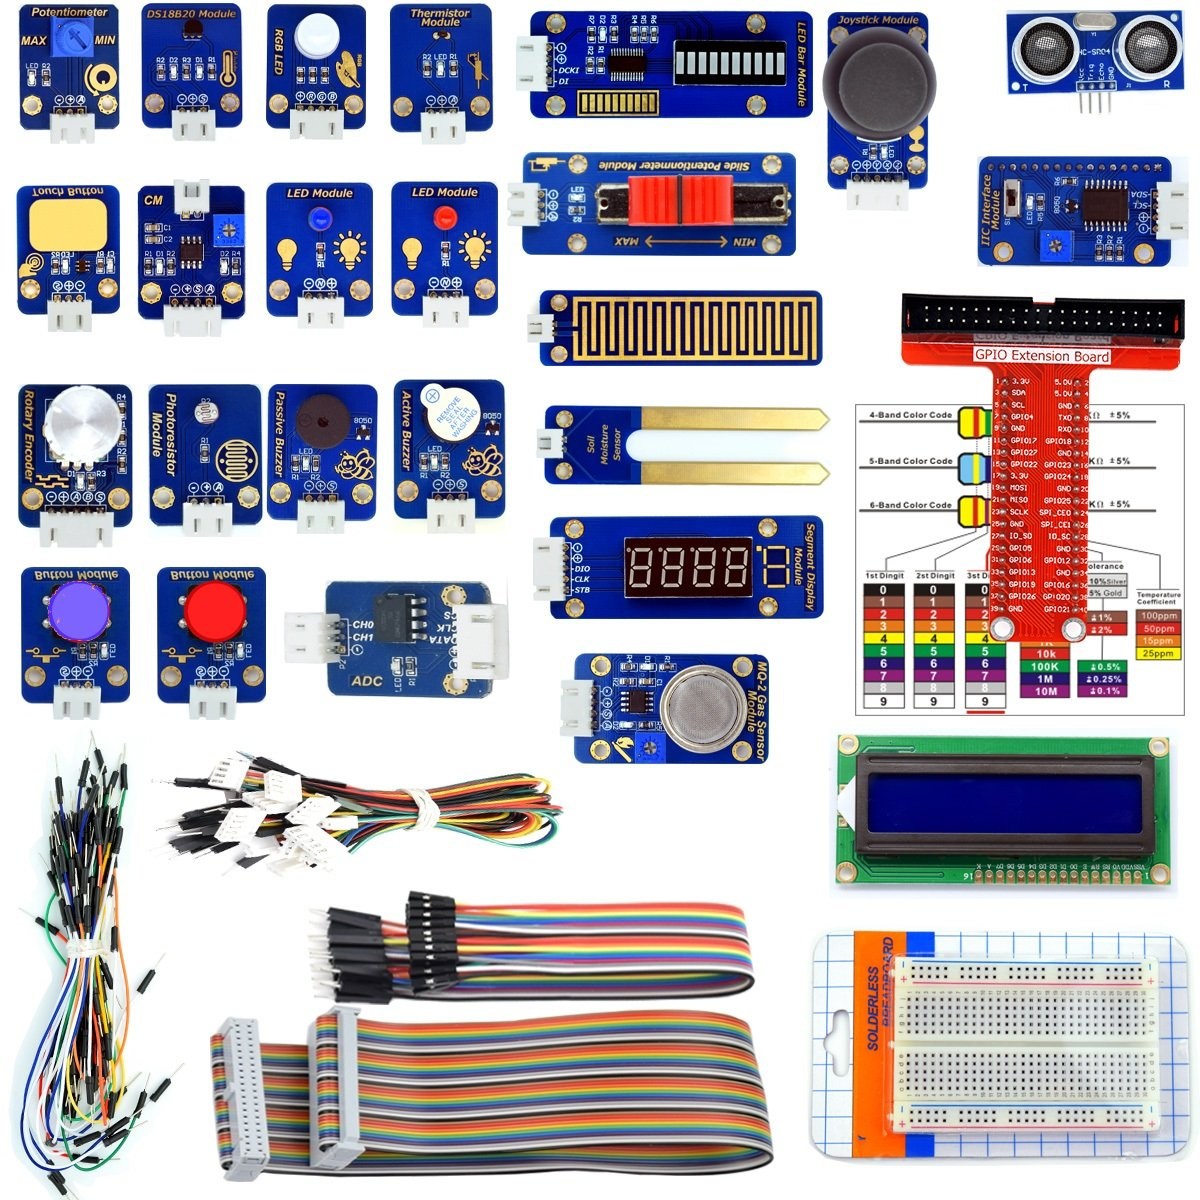 Adeept 24 Modules Sensor Kit For Raspberry Pi 3 2 B Ds18b20 Wiringpi I2c Robot Projects Starter With Tutorials C And Python Code 95 Pages Pdf Guidebook